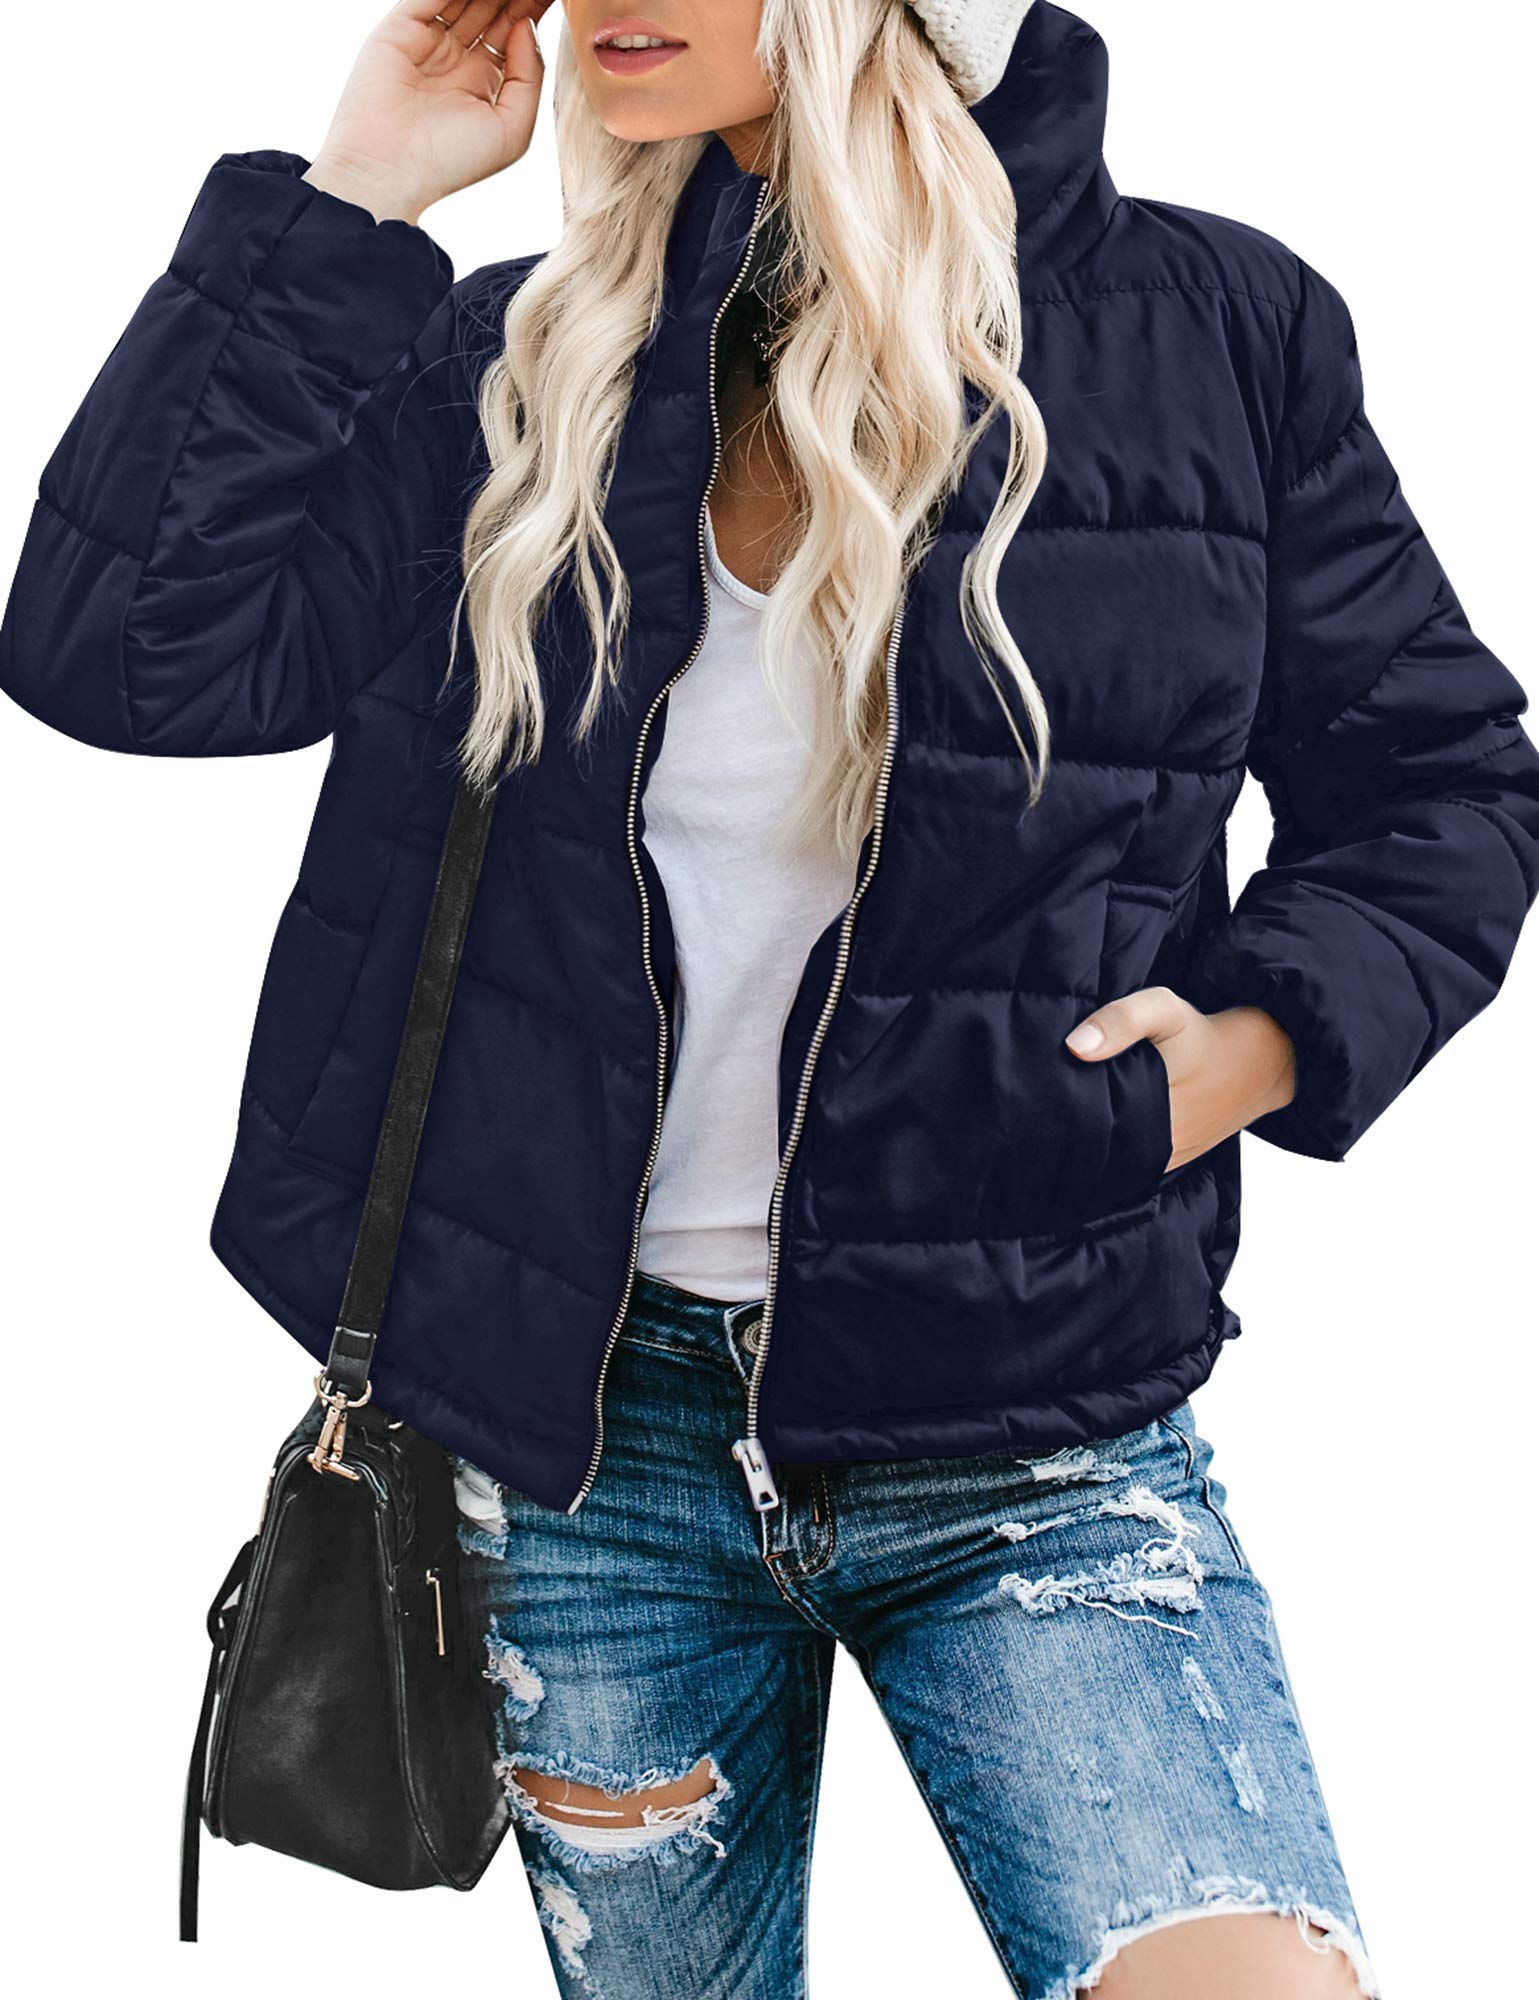 Utyful Women's Zip Up Quilted Lightweight Jacket Padded Puffer Coat Outerwear Navy Blue Size Large by Utyful